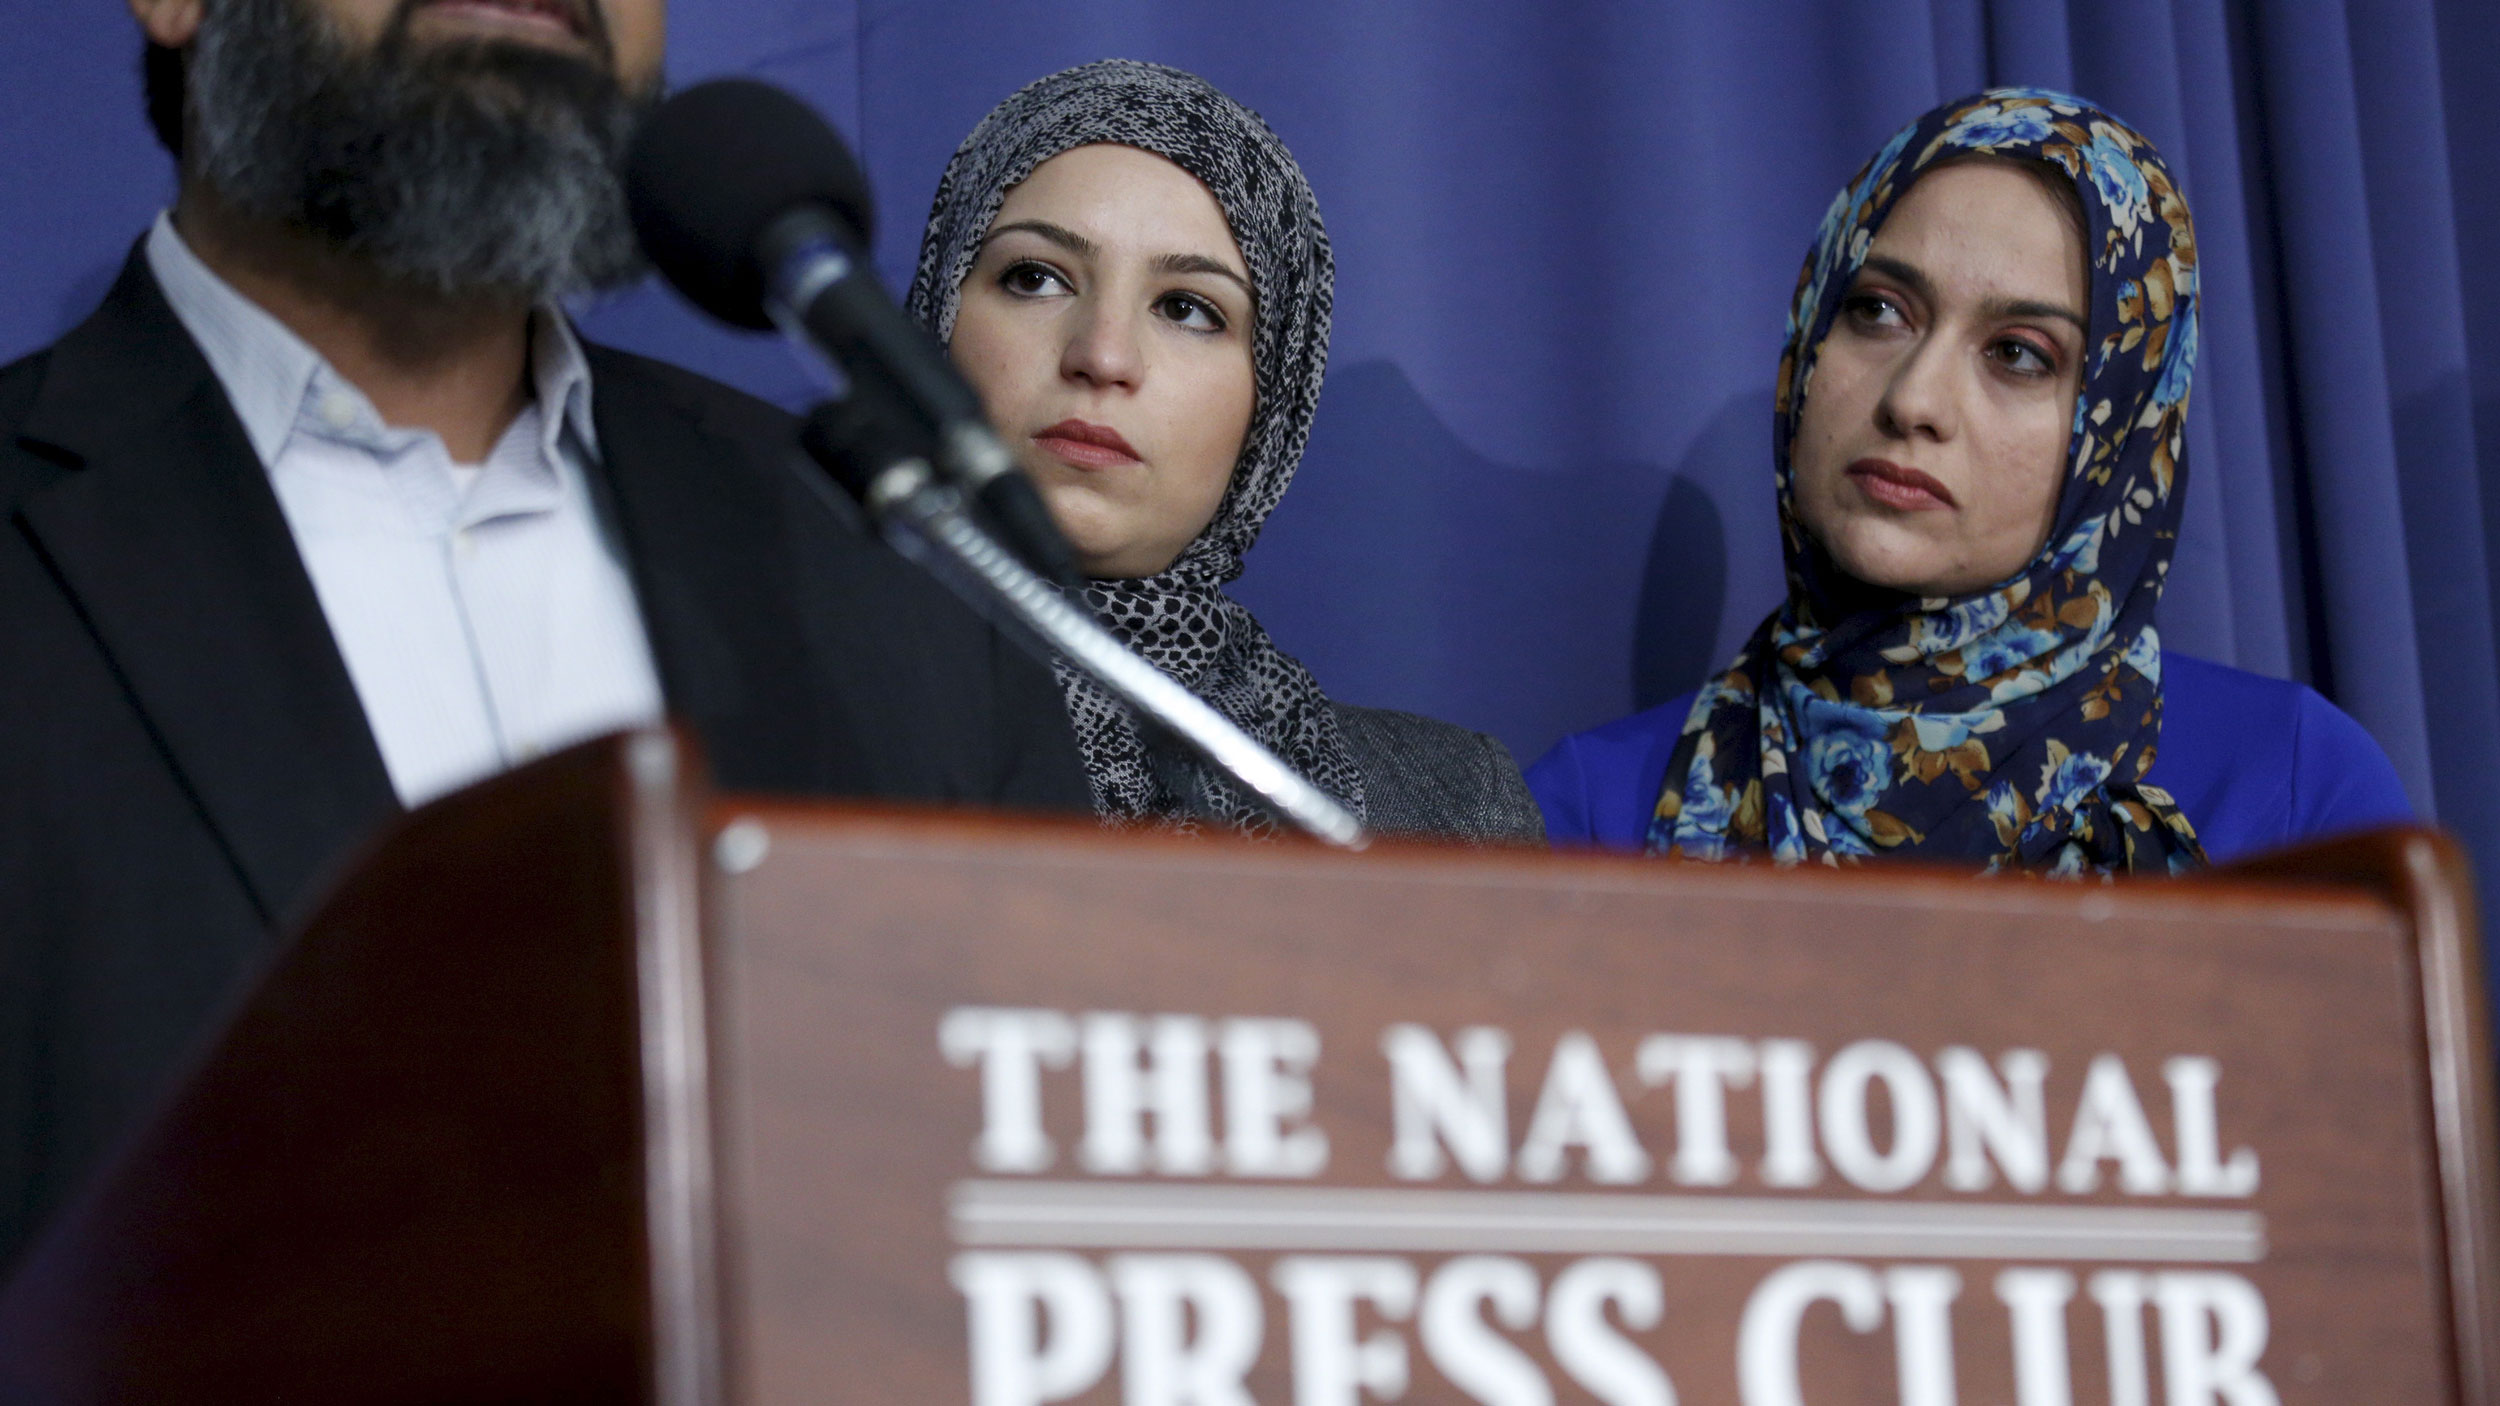 Two women wearing head scarves watch a man at a podium.